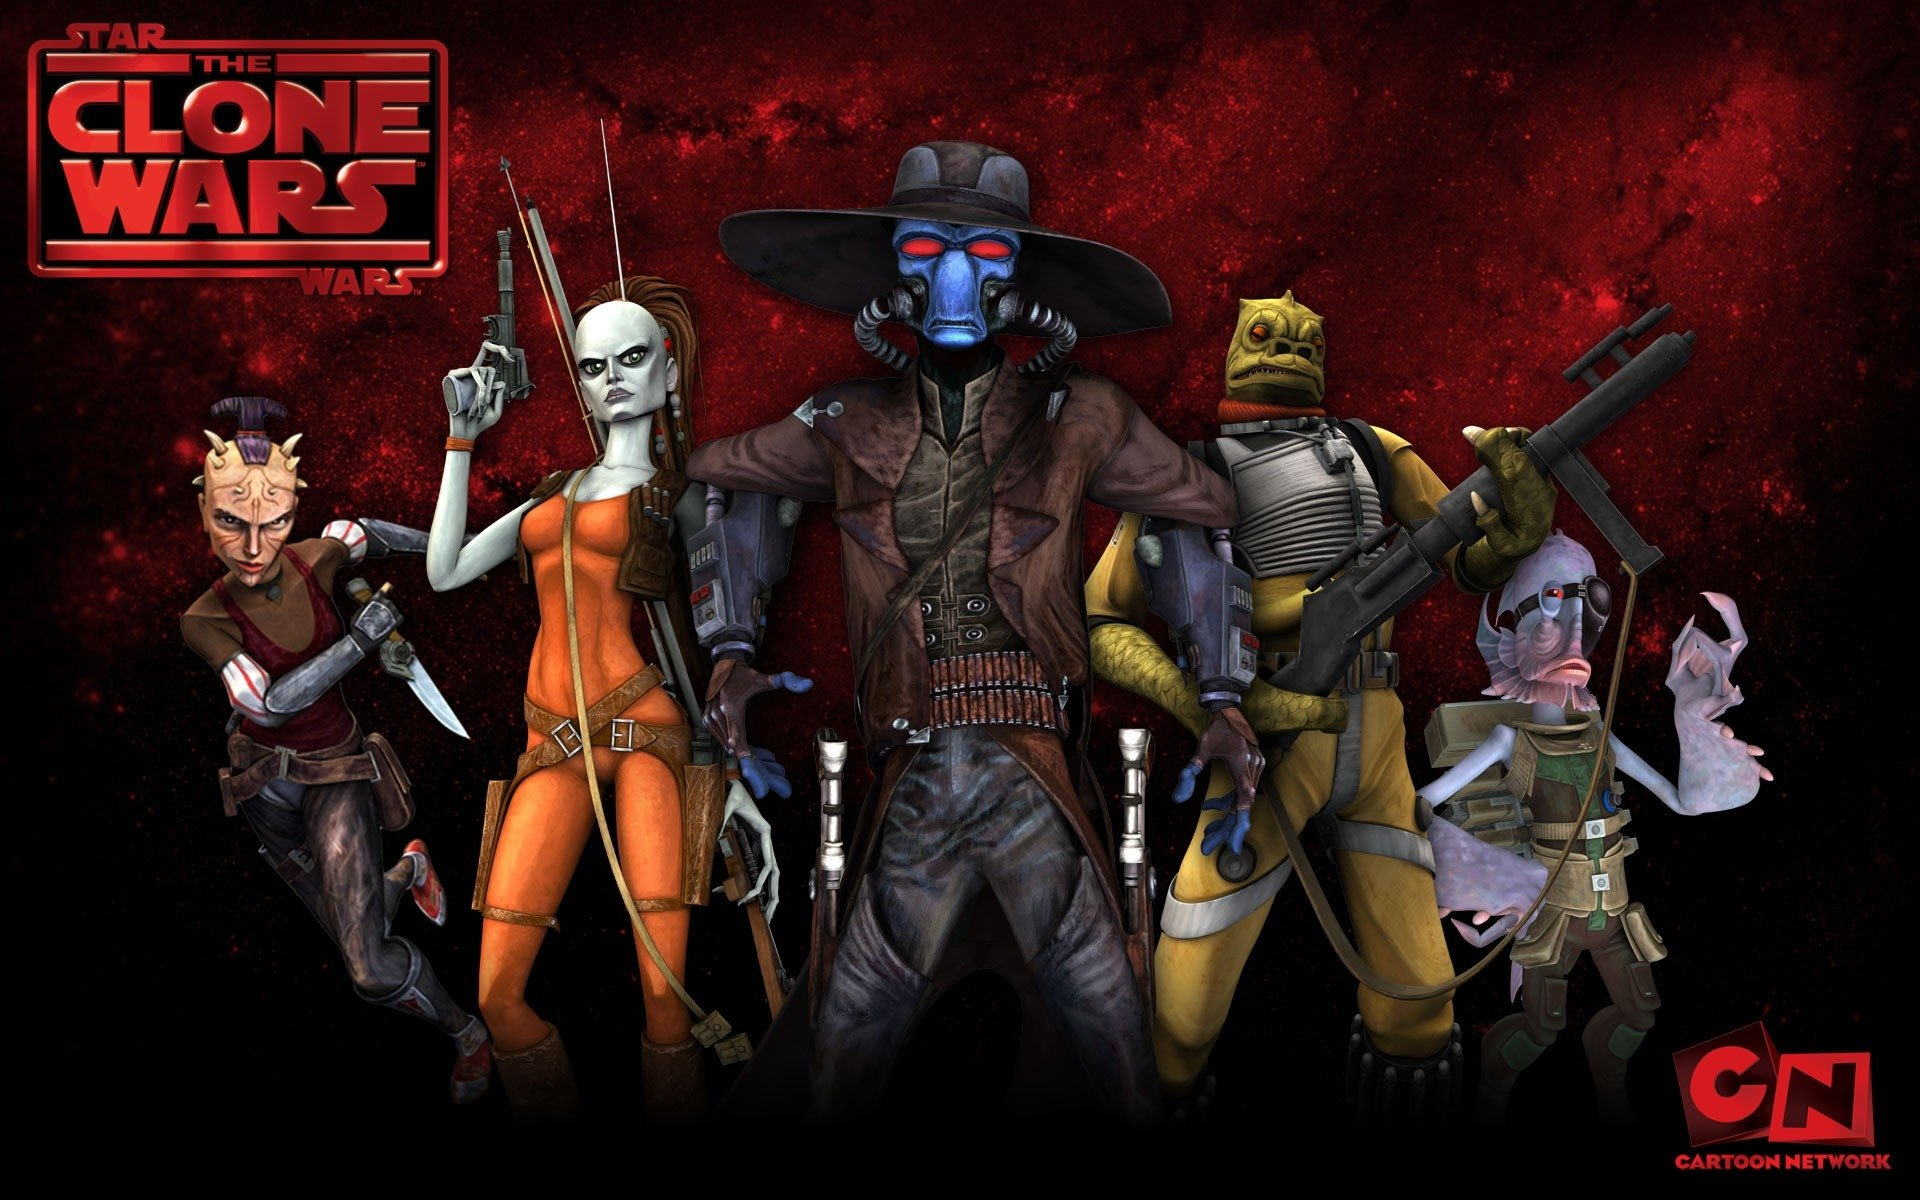 Star Wars The Clone Wars Wallpaper: Season 2: Rise Of The Bounty Hunters Full HD Wallpaper And